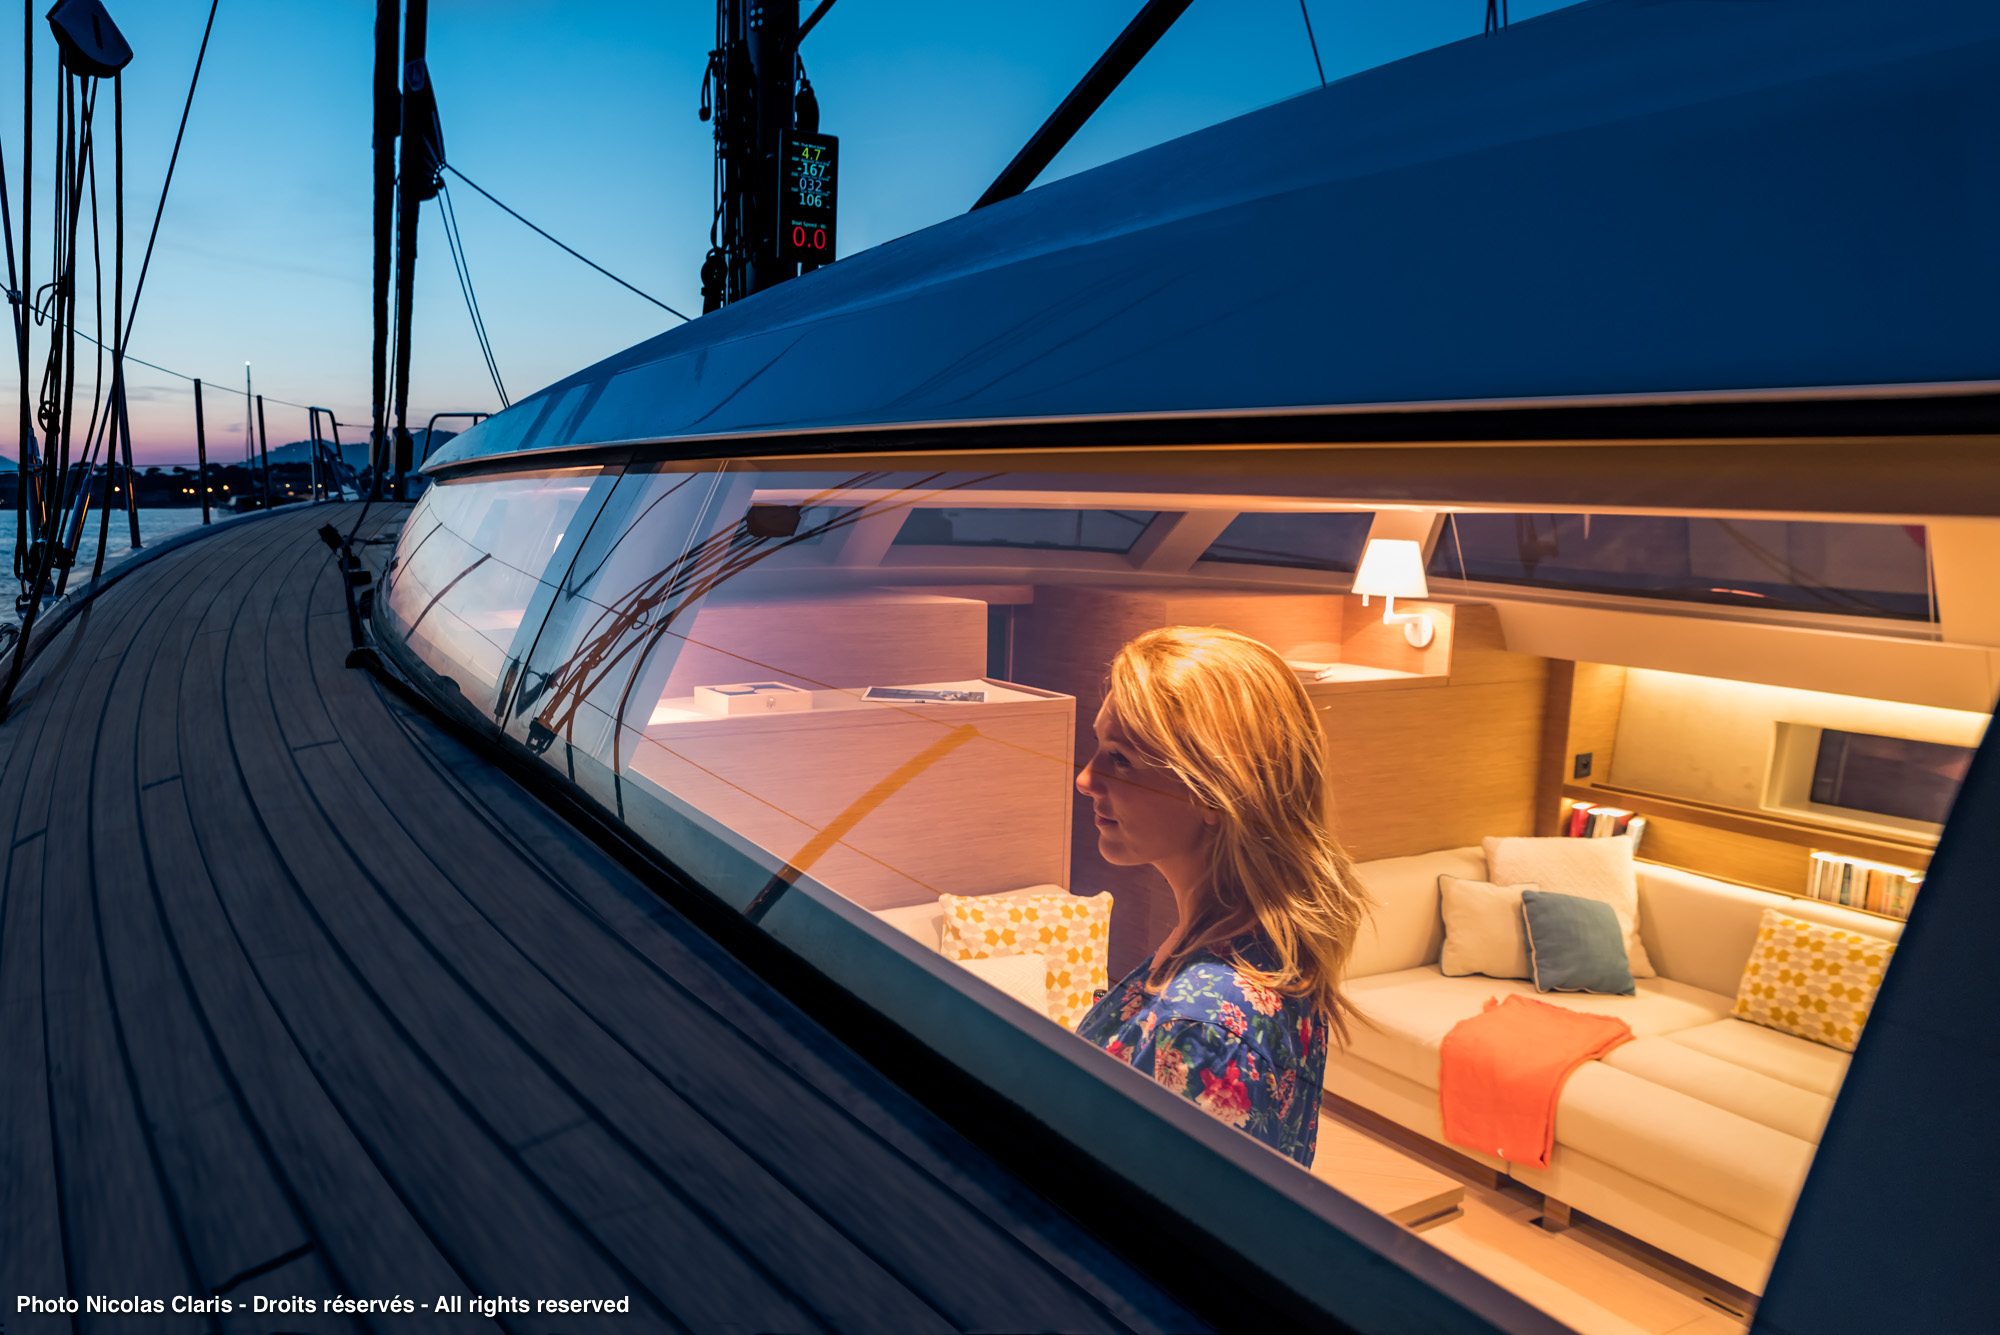 Lifestyle – Interior of yachts